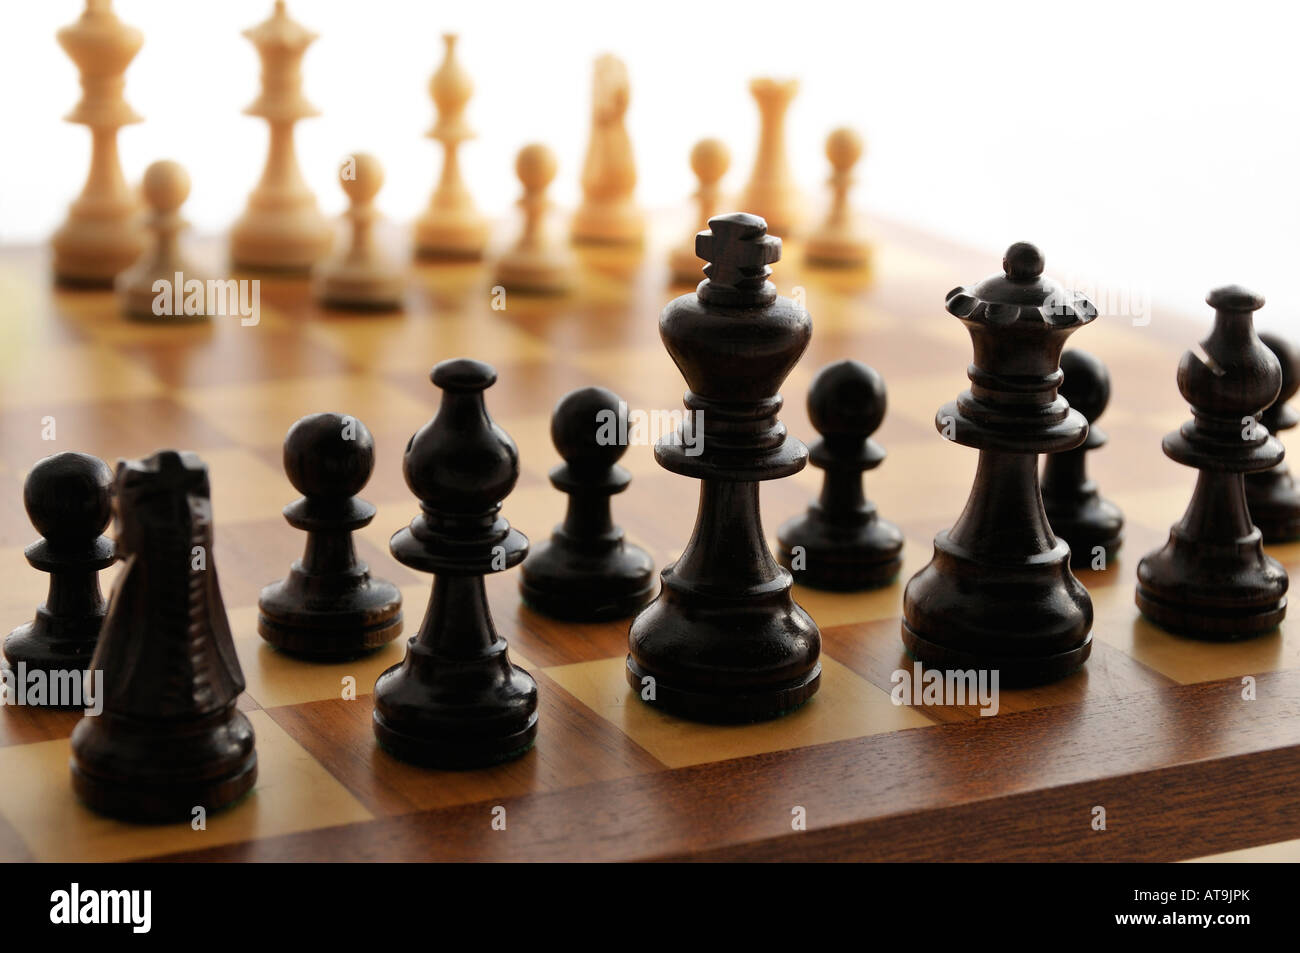 A chess board set up ready for a game - Stock Image